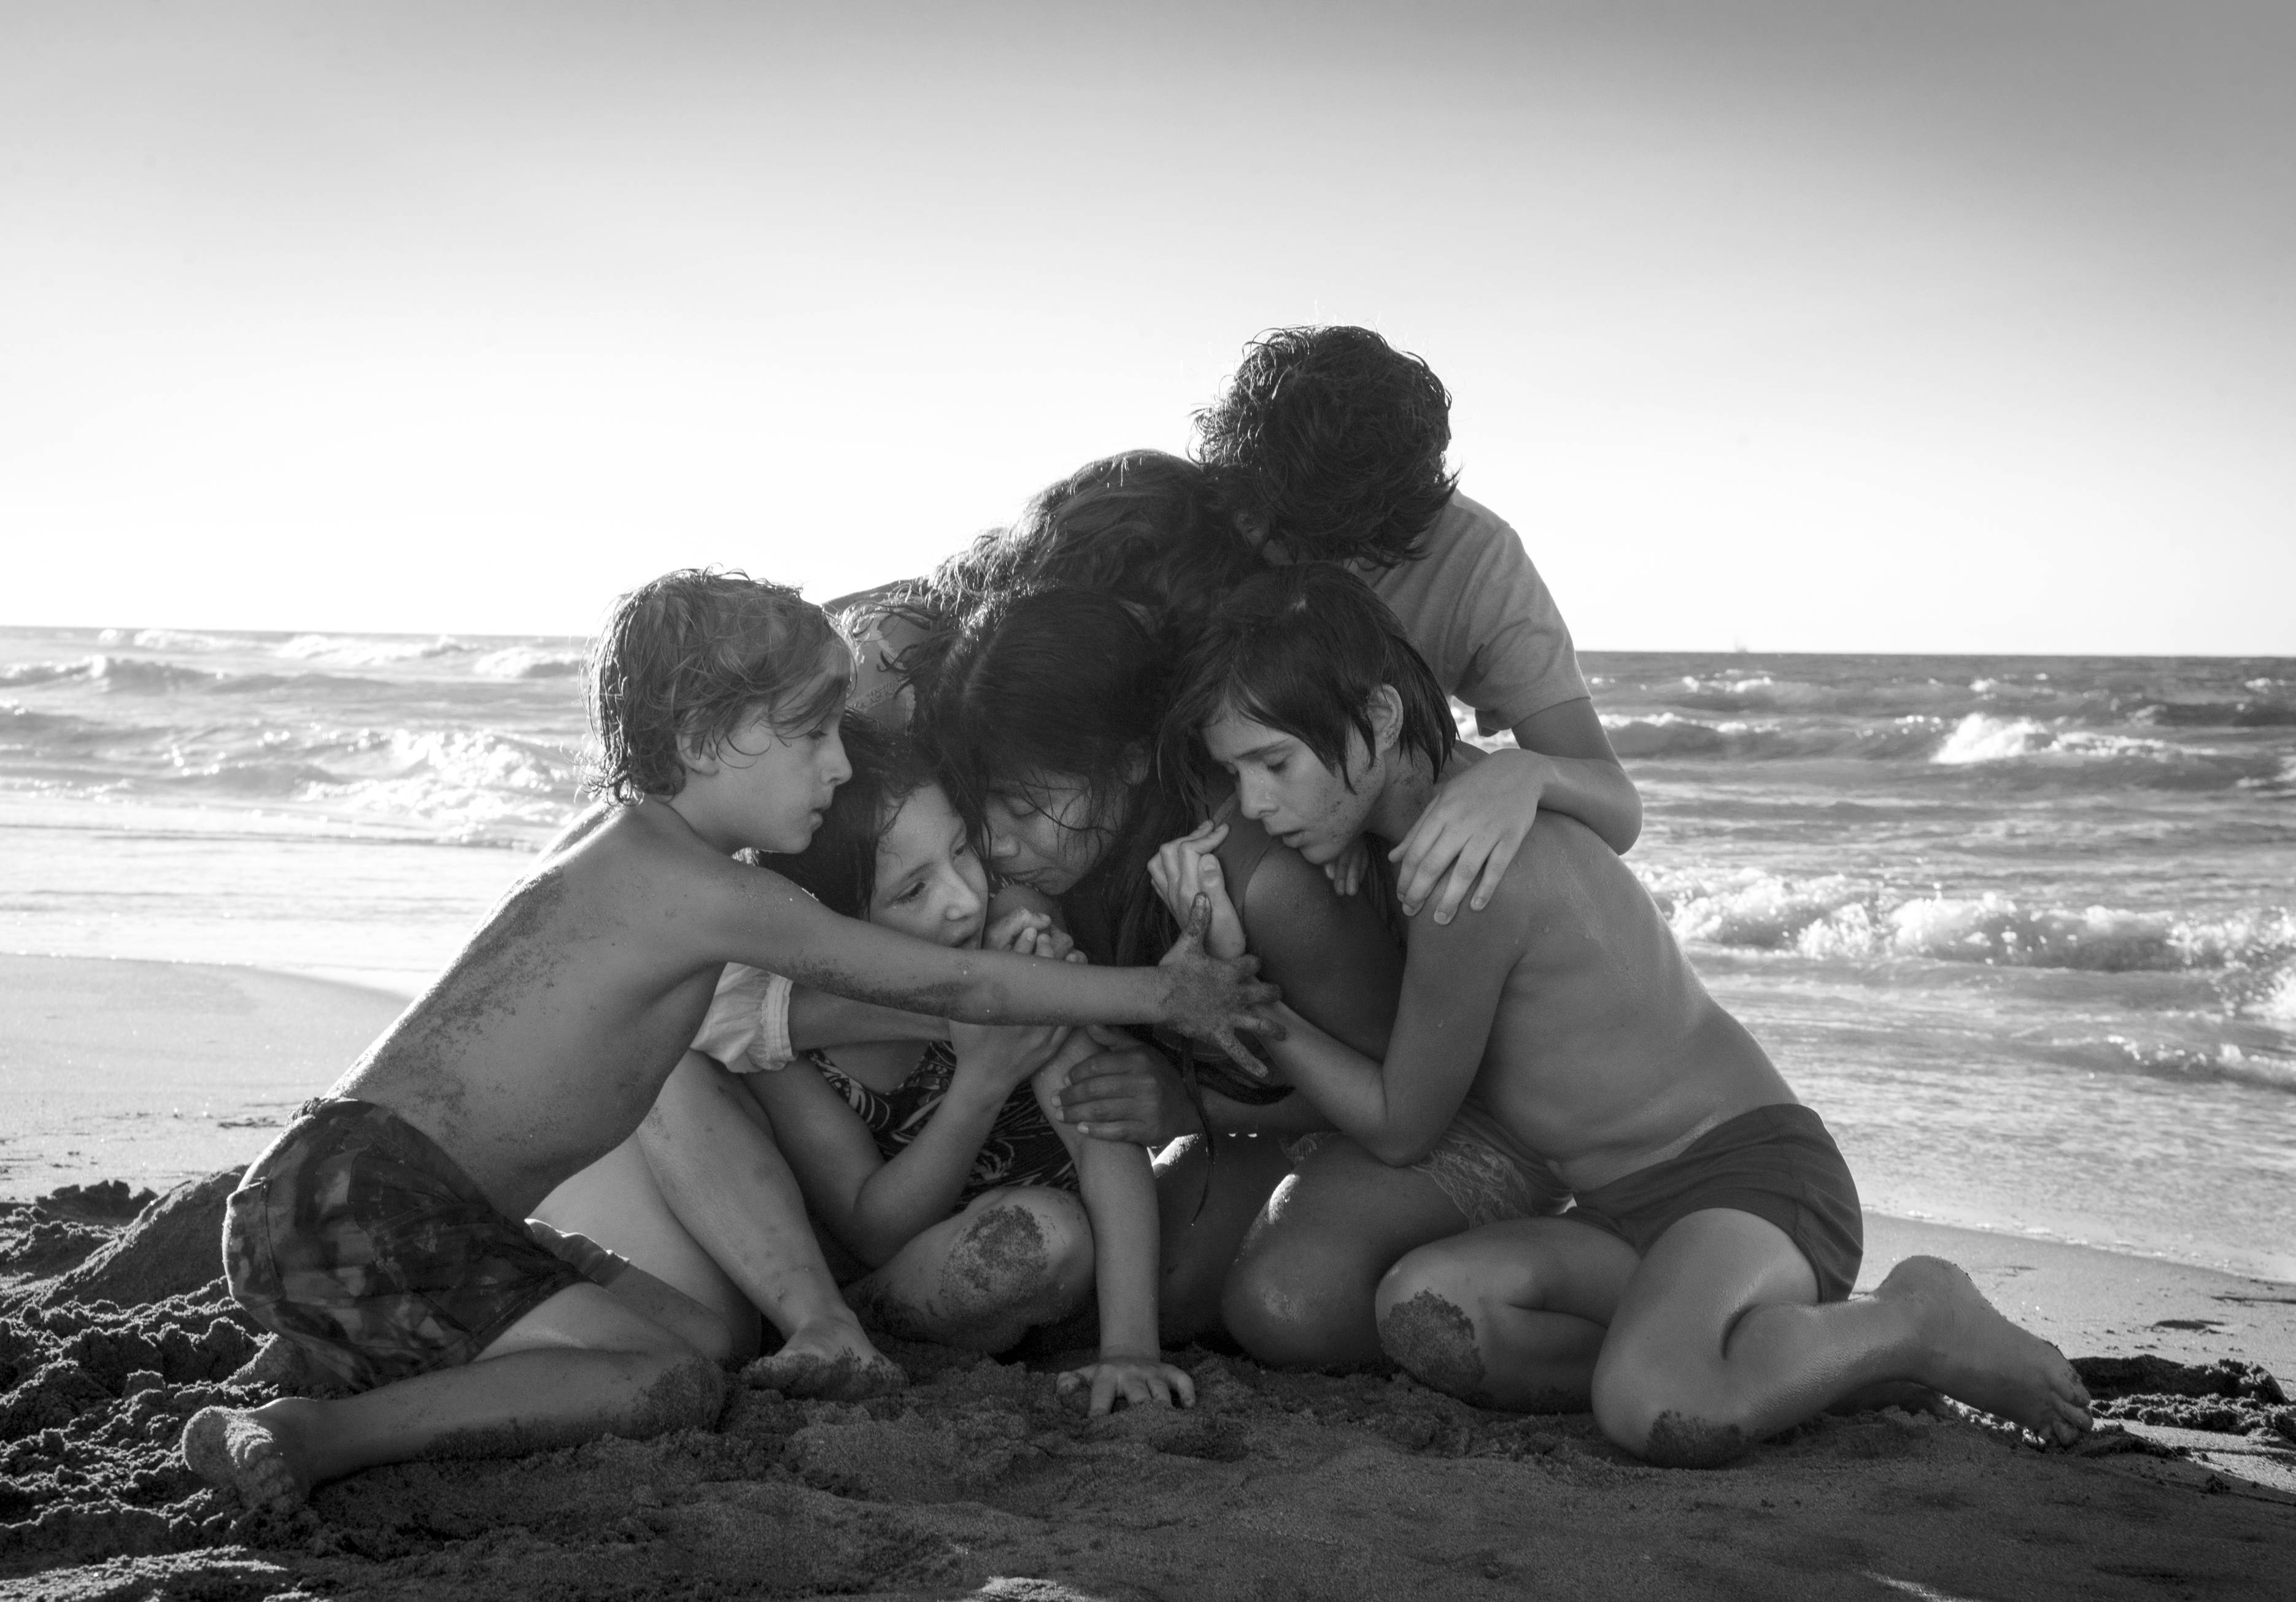 "This image released by Netflix shows Yalitza Aparicio, center, in a scene from the film ""Roma,"" by filmmaker Alfonso Cuaron. On Thursday, Dec. 6, 2018, the film was nominated for a Golden Globe award for best foreign language film. The 76th Golden Globe Awards will be held on Sunday, Jan. 6."